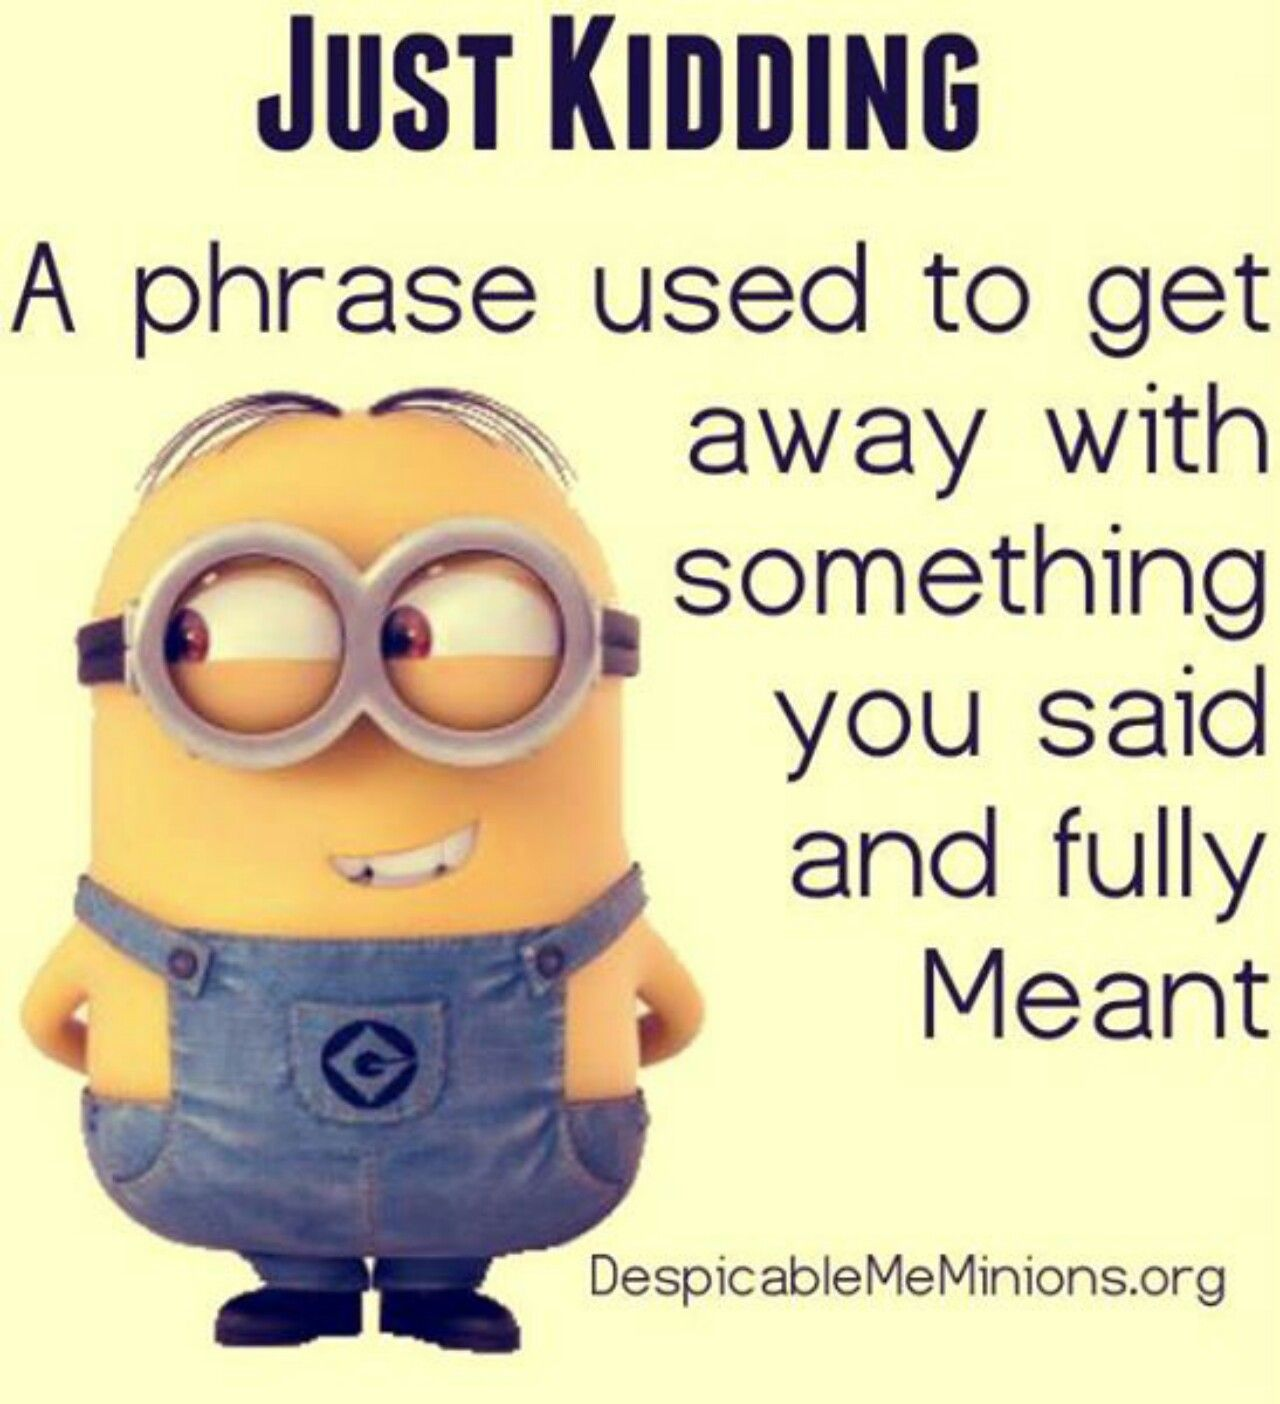 Pin by Jann Muhlhauser on Minions | Funny inspirational ...